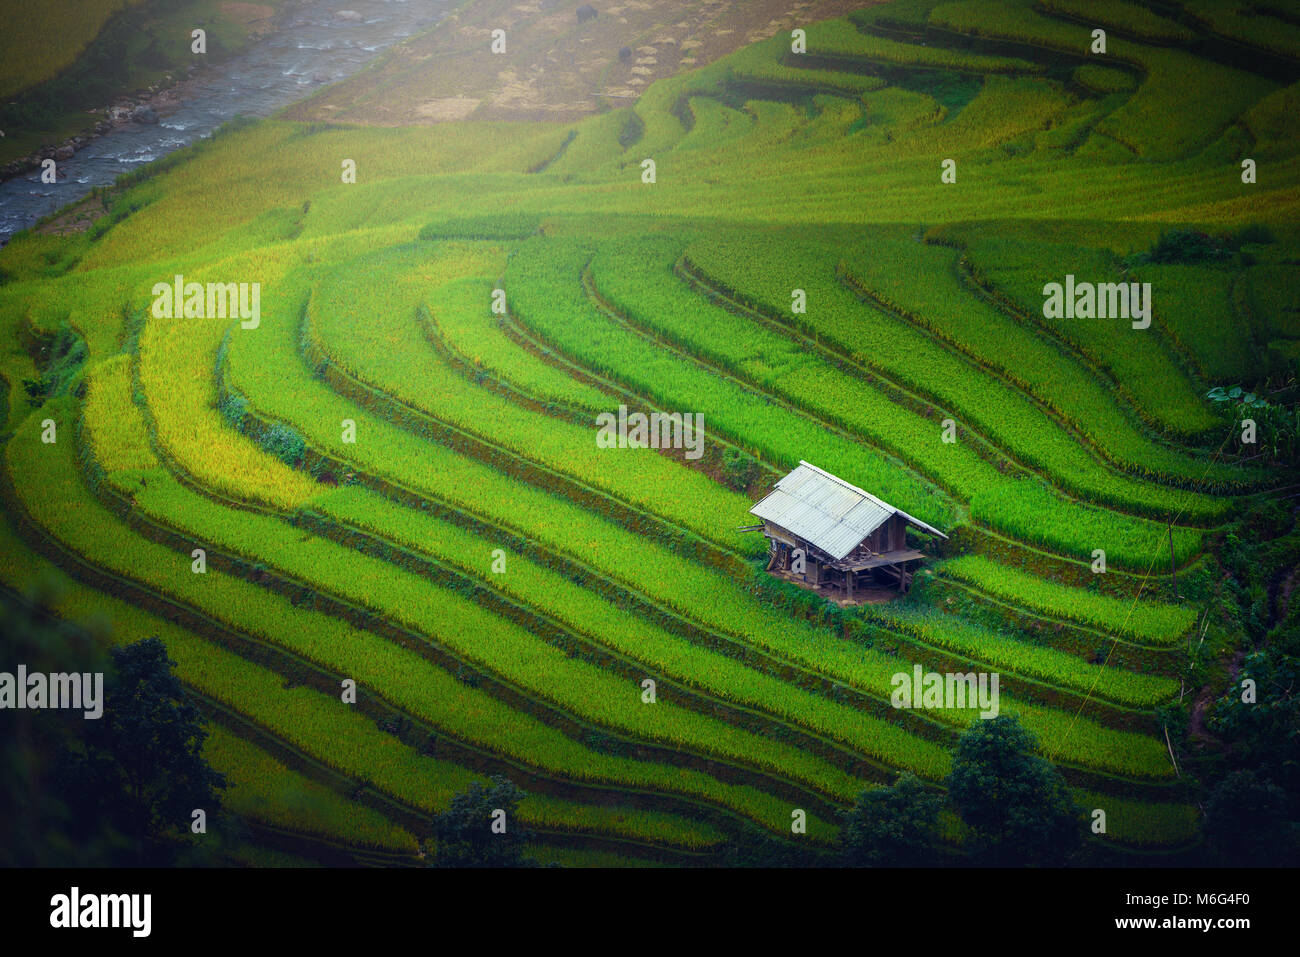 Rice fields on terraced with wooden pavilion at sunrise in Mu Cang Chai, YenBai, Vietnam. - Stock Image